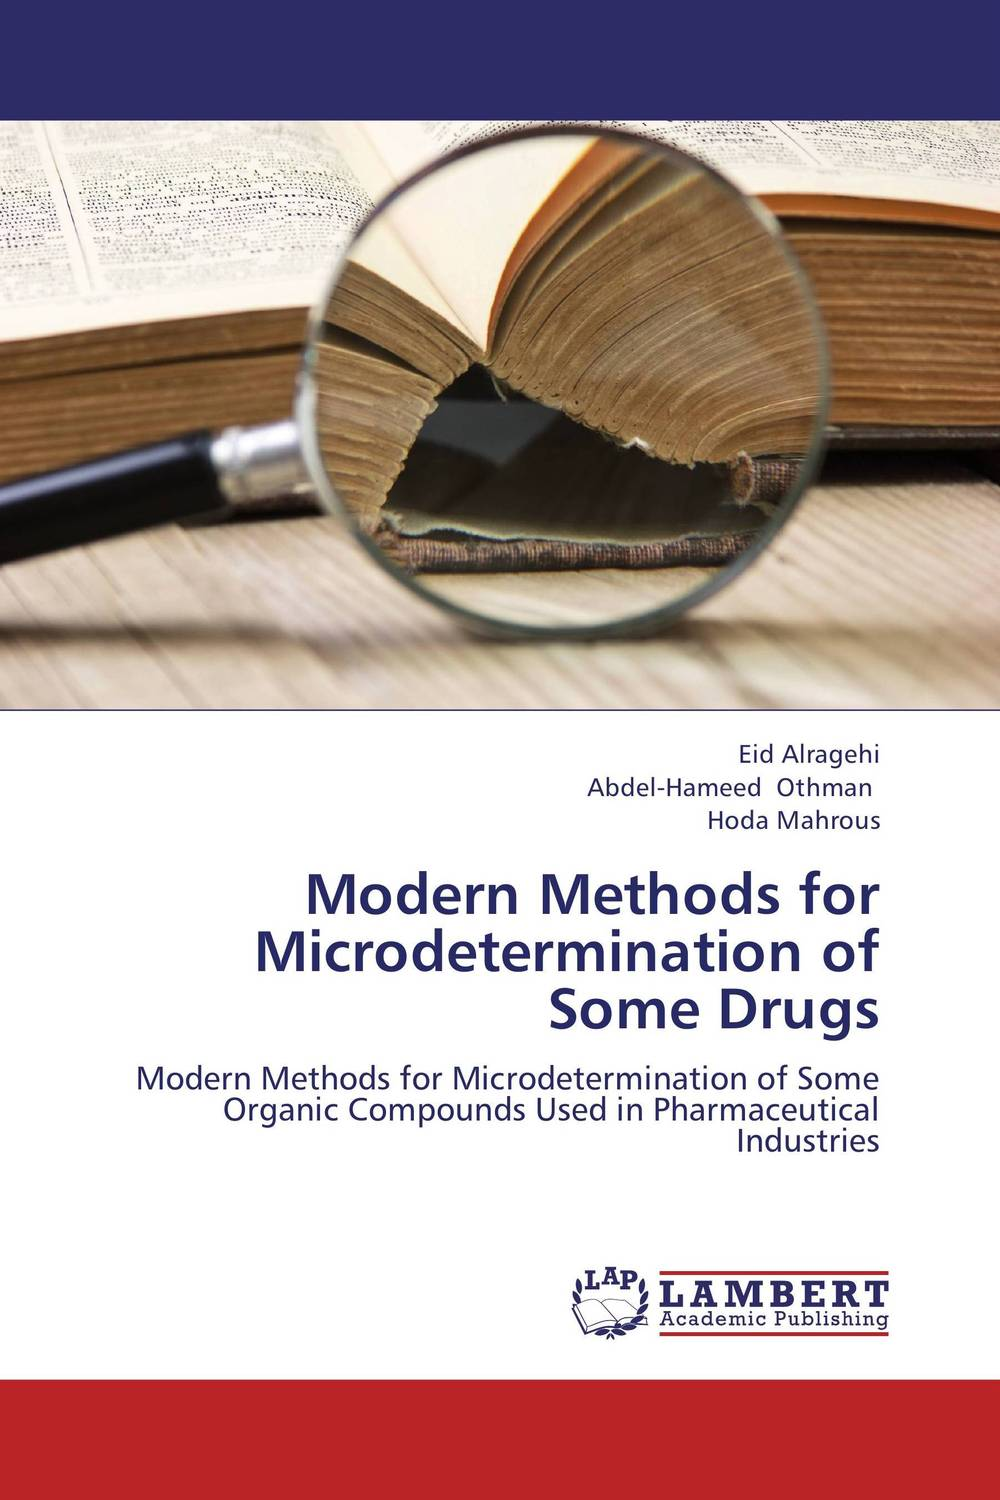 Modern Methods for Microdetermination of Some Drugs belousov a security features of banknotes and other documents methods of authentication manual денежные билеты бланки ценных бумаг и документов